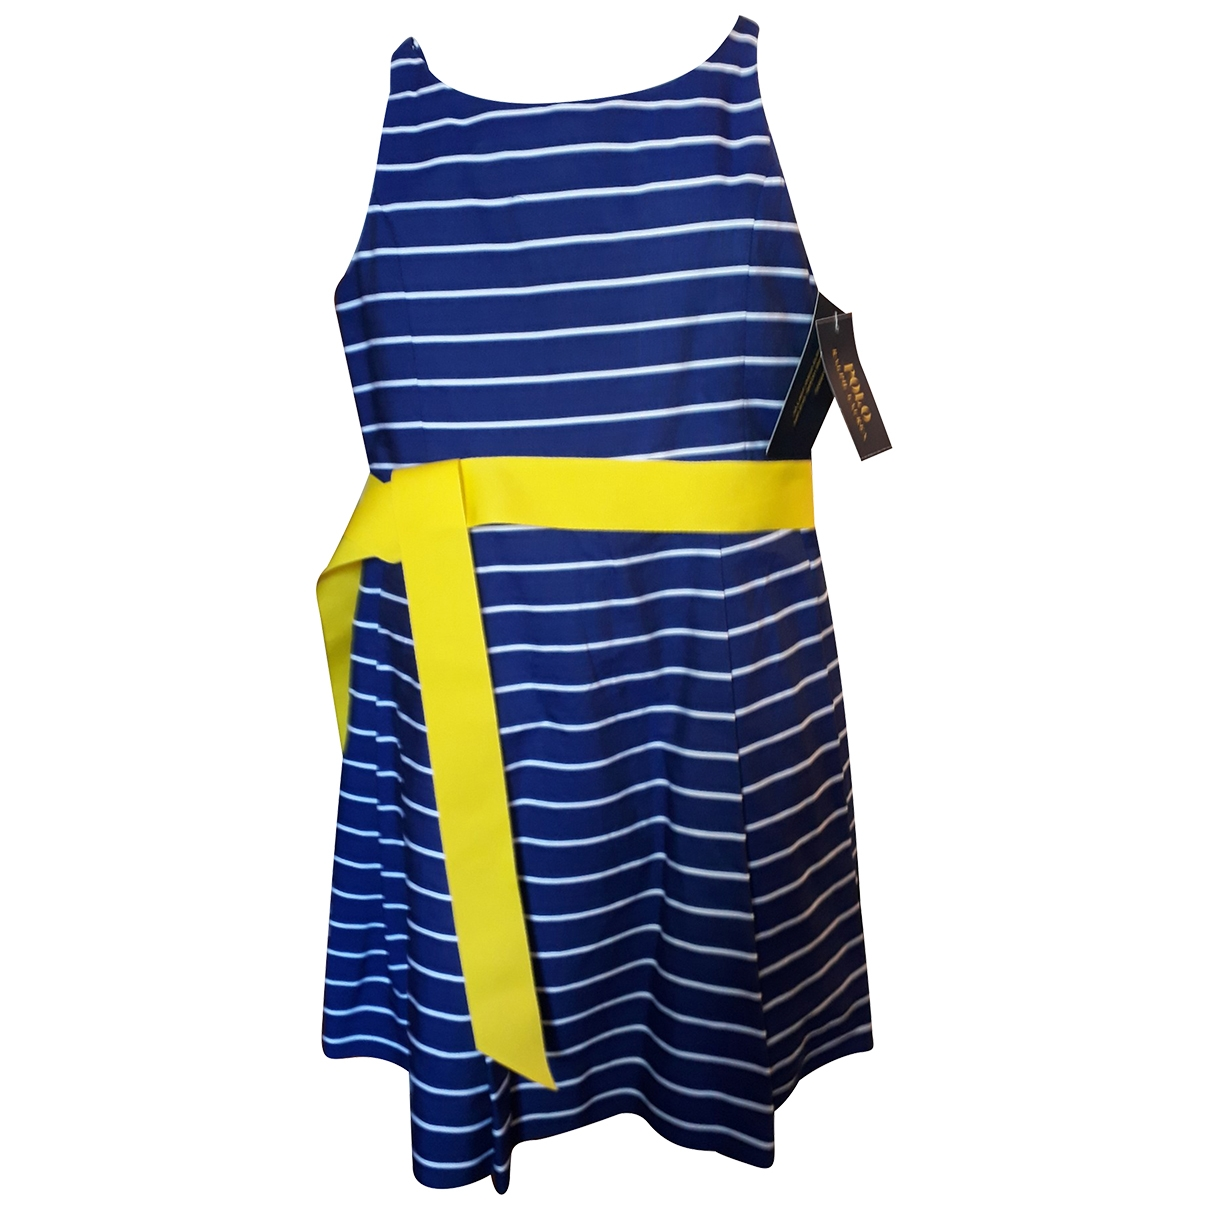 Polo Ralph Lauren \N Blue Cotton dress for Kids 6 years - up to 114cm FR